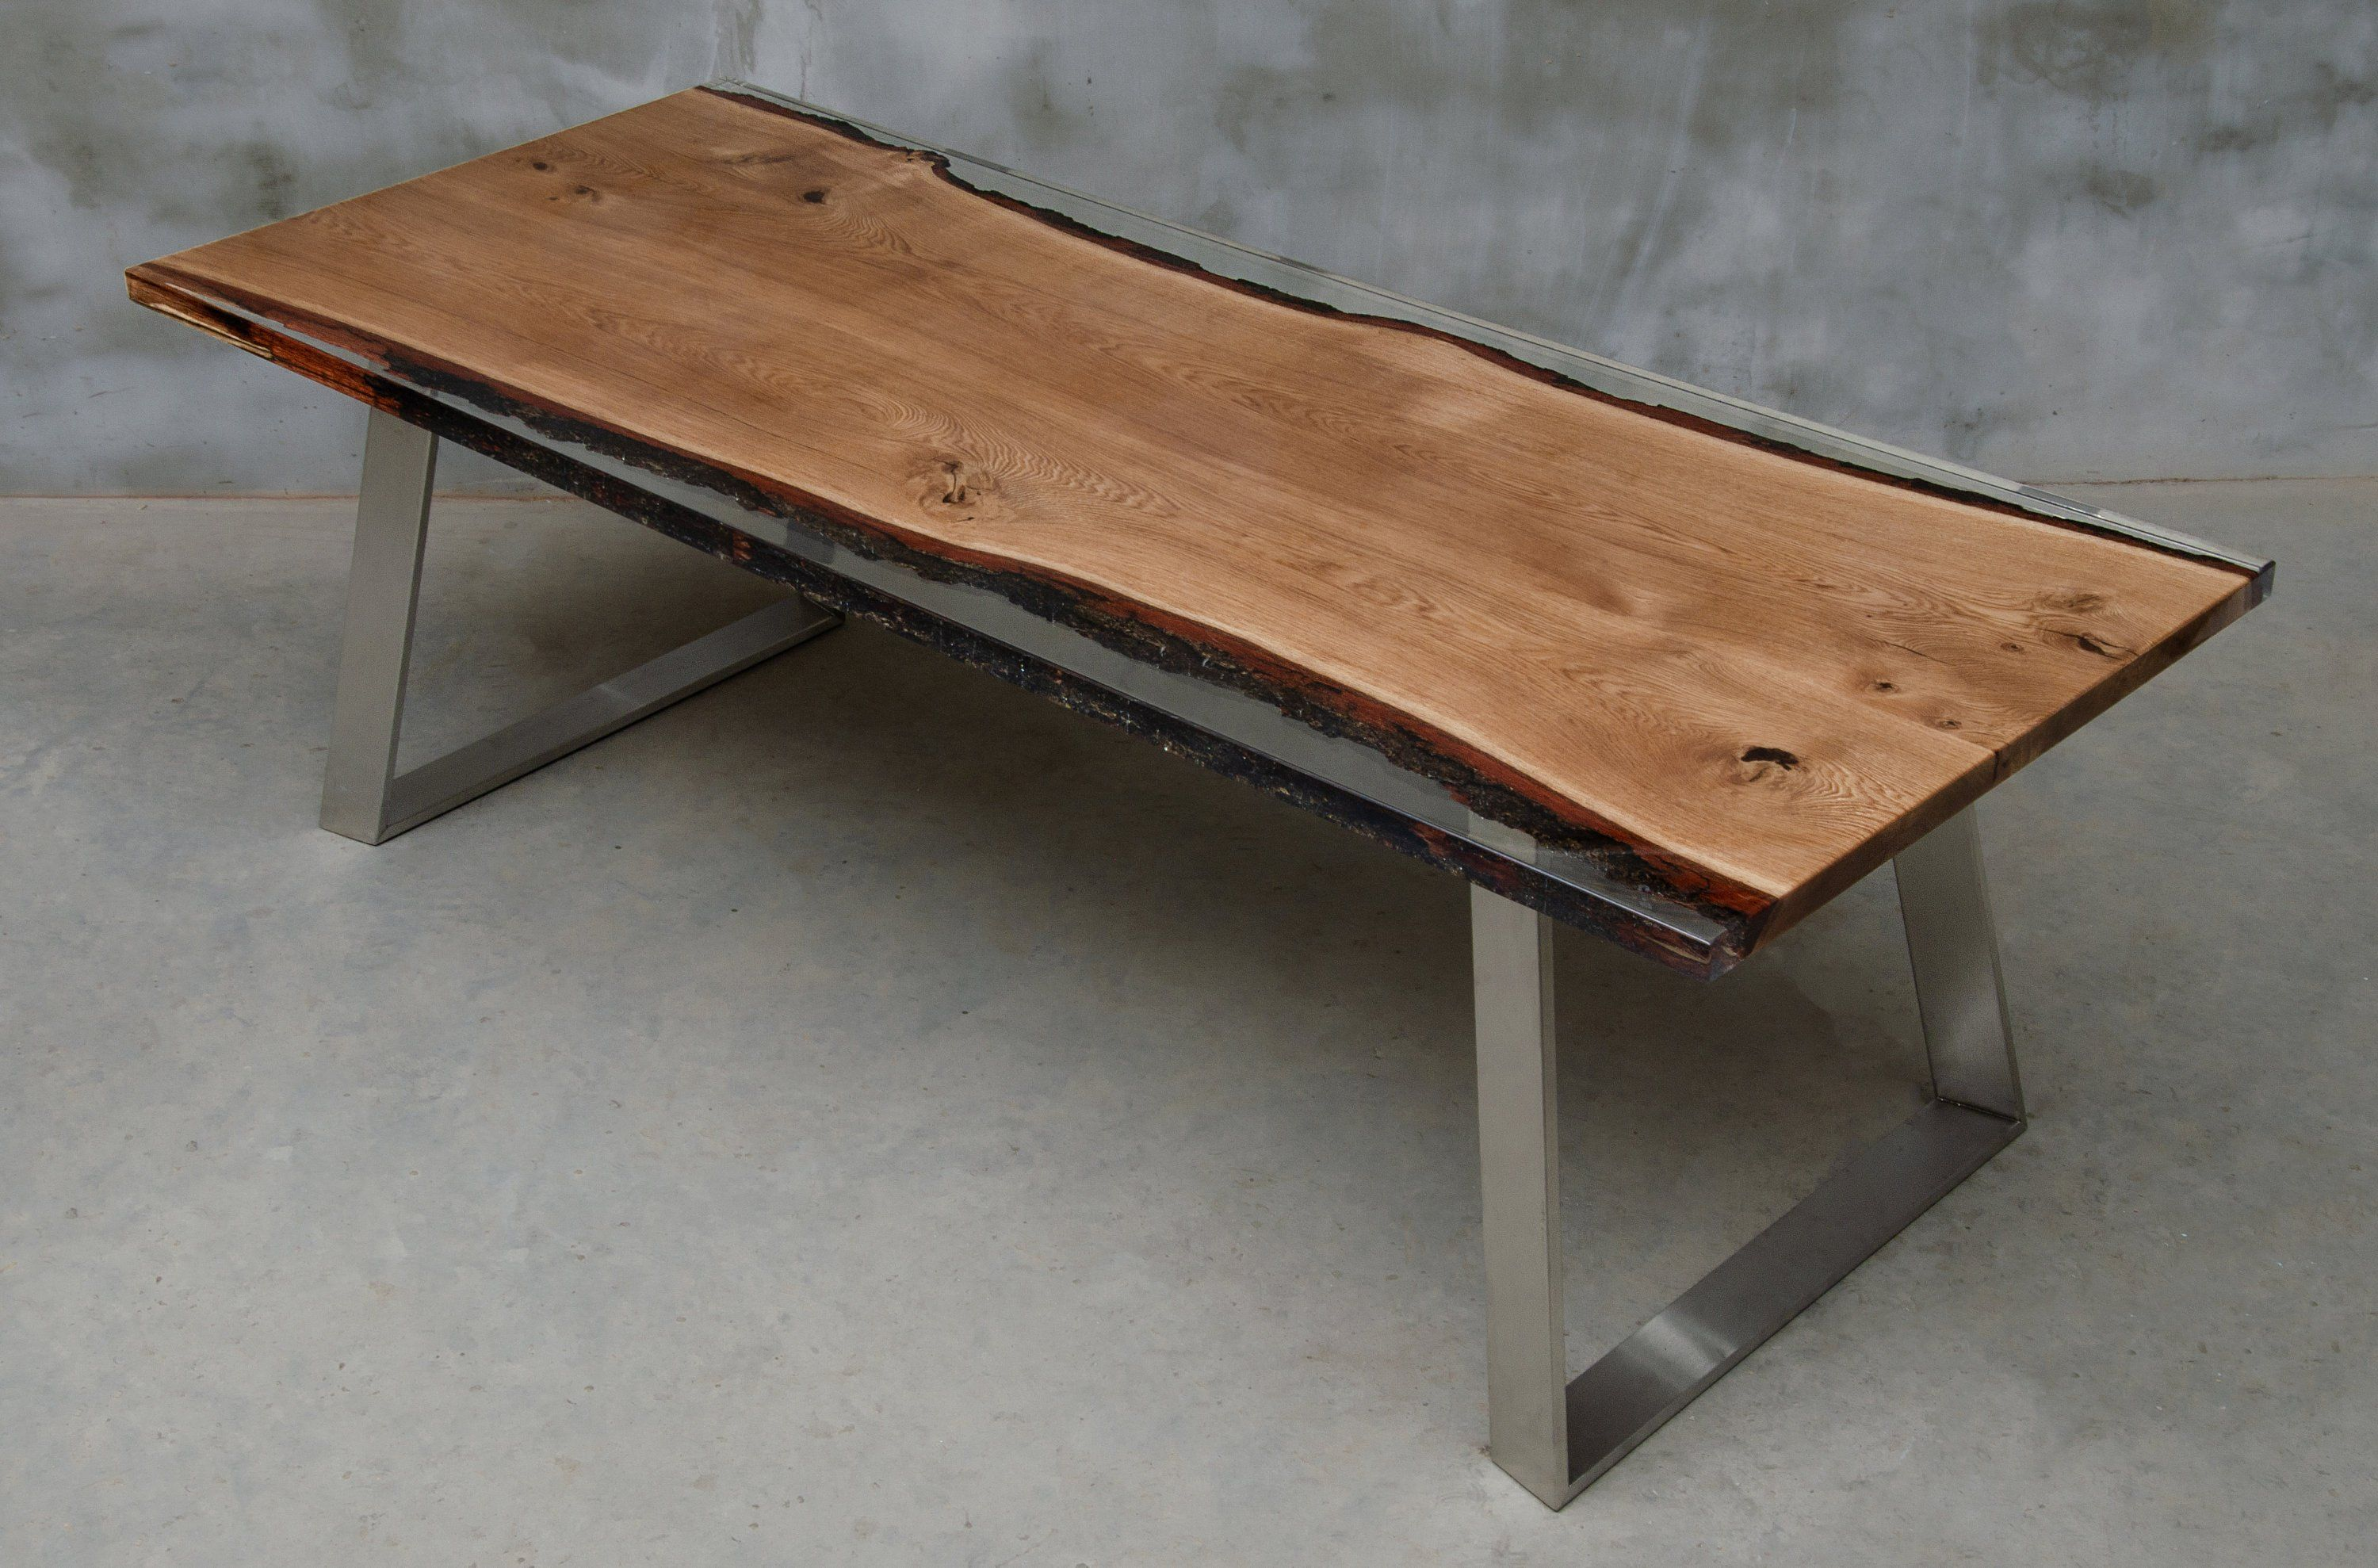 Custom Live Edge Table Made Of Oak Wood Epoxy Table With Steel Legs Uv Resin Table Modern Dining River Table Luxury Style